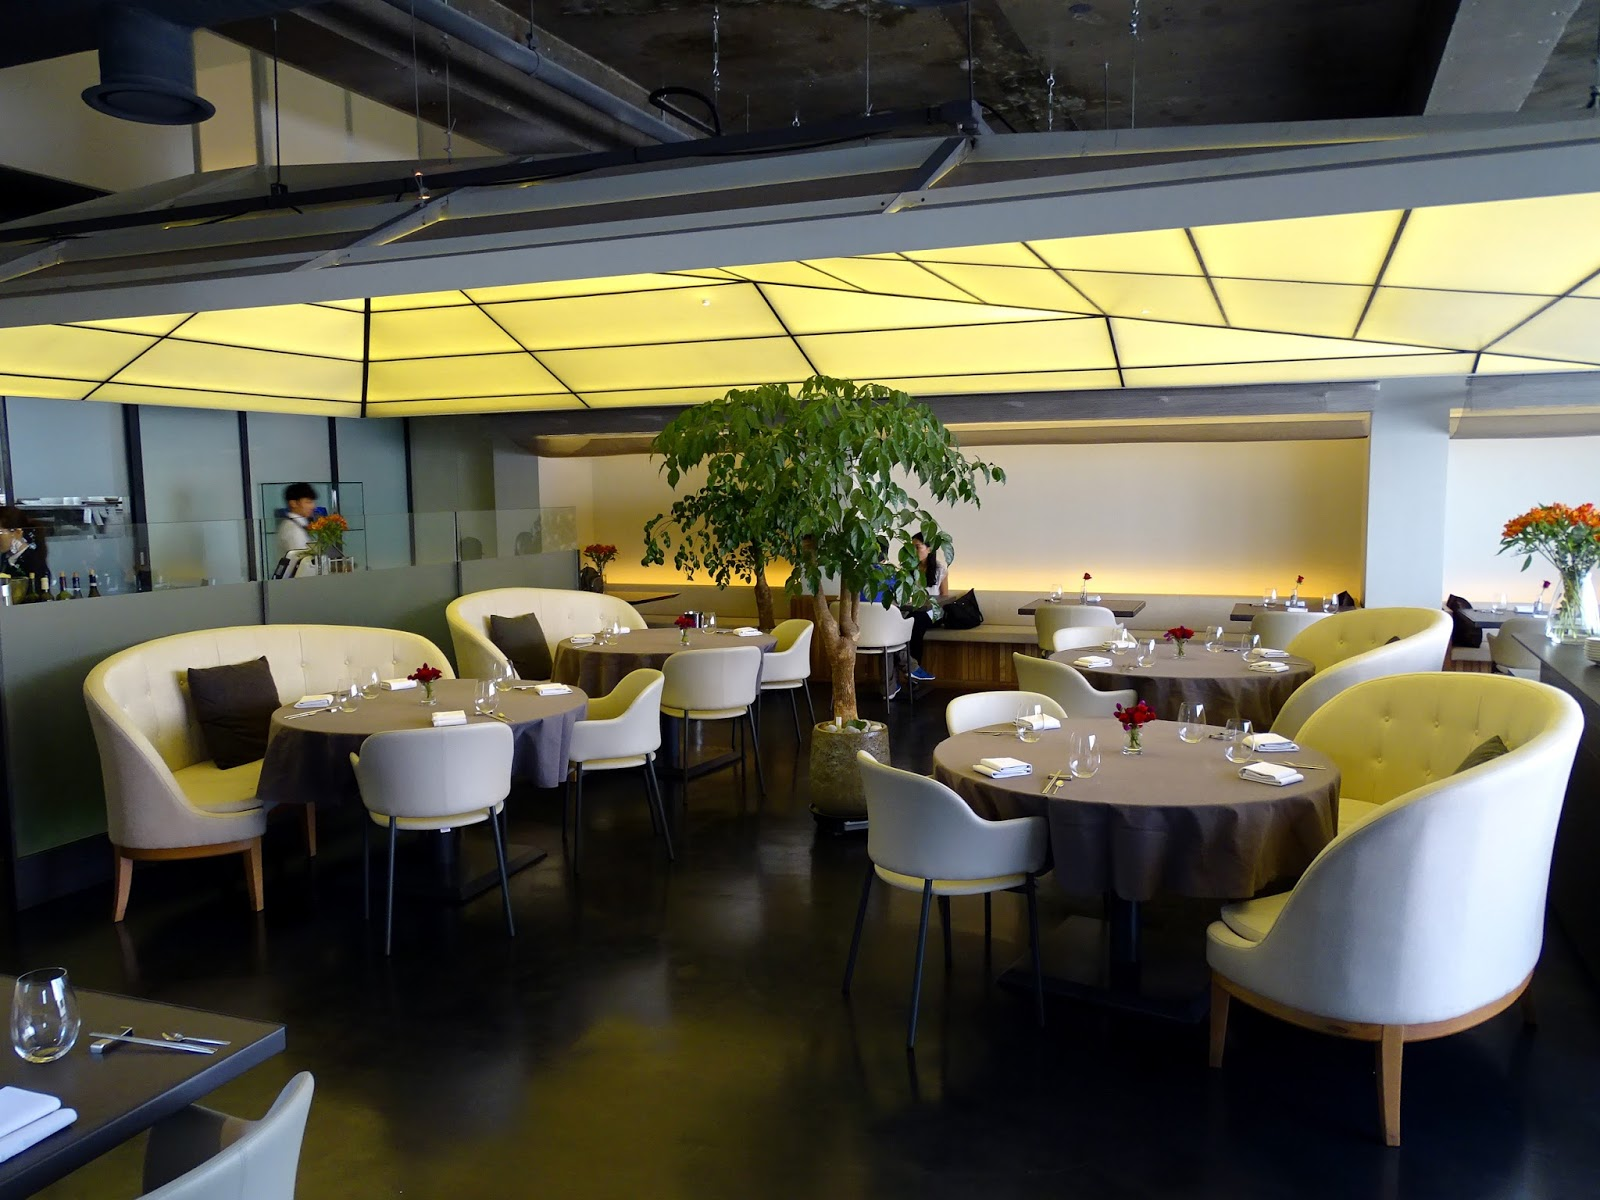 technically not a true french restaurant soign checks in as a contemporary restaurant serving contemporary korean cuisine with a french twist